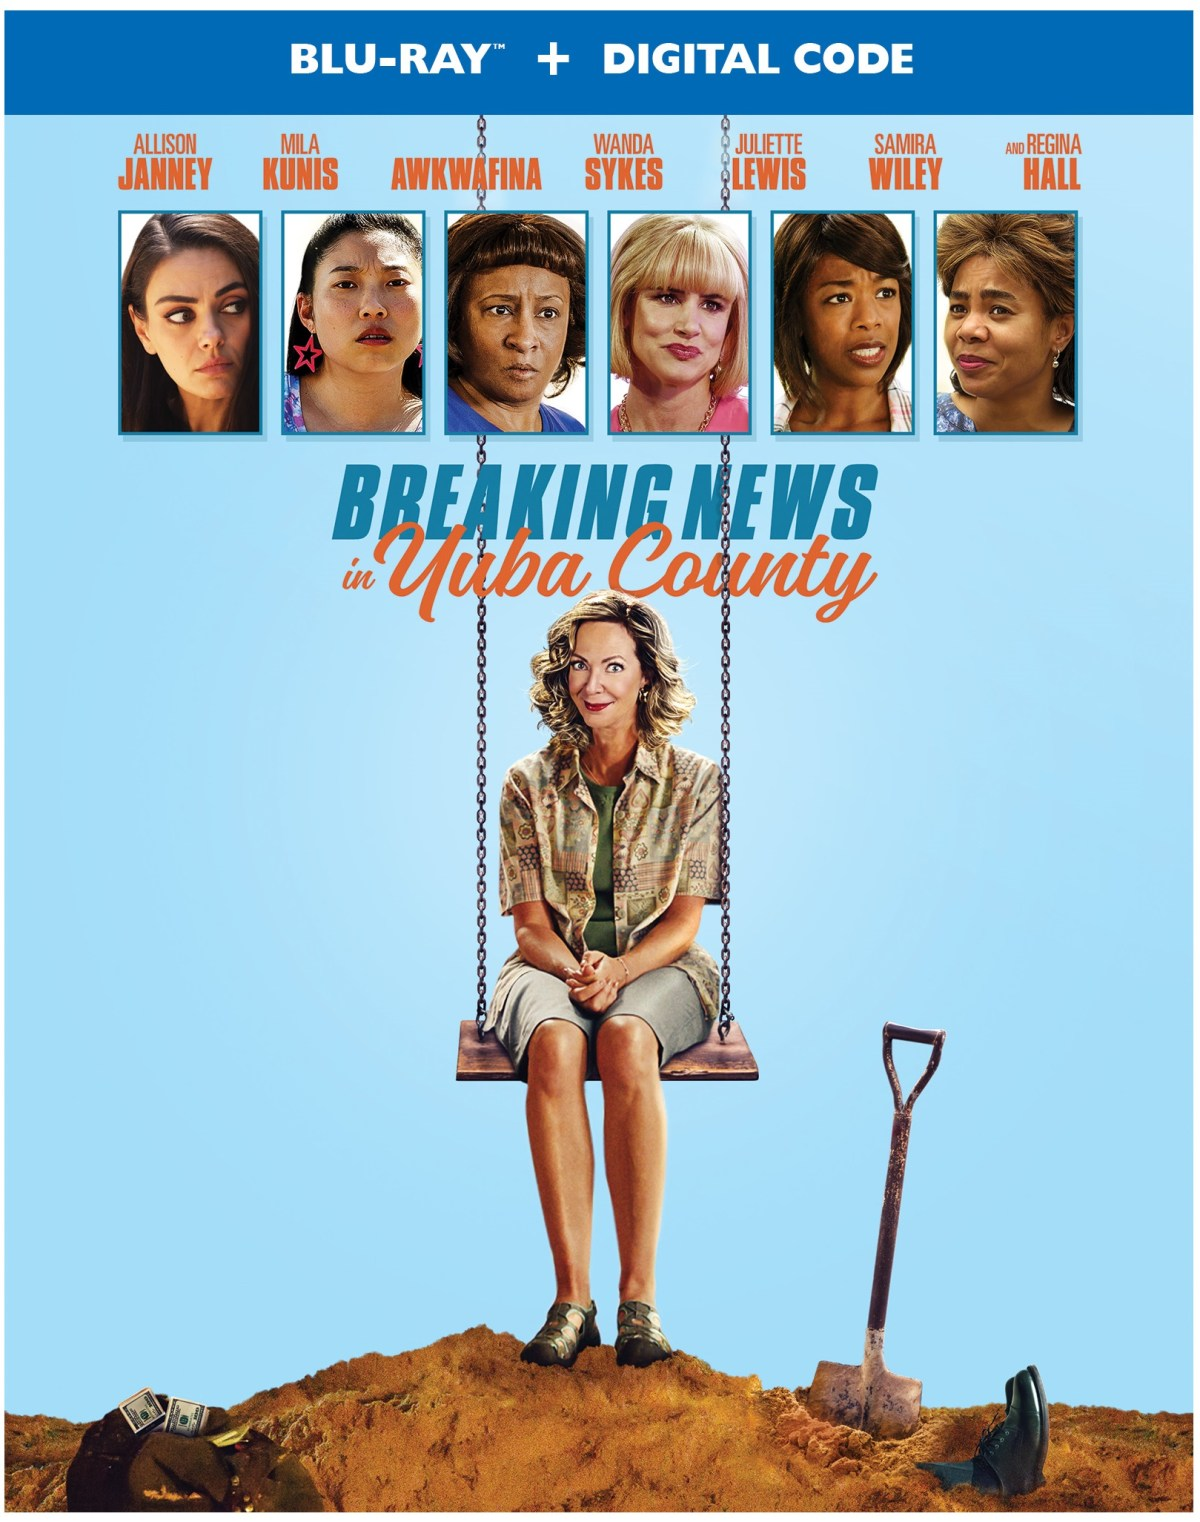 breaking news in yuba county blu ray